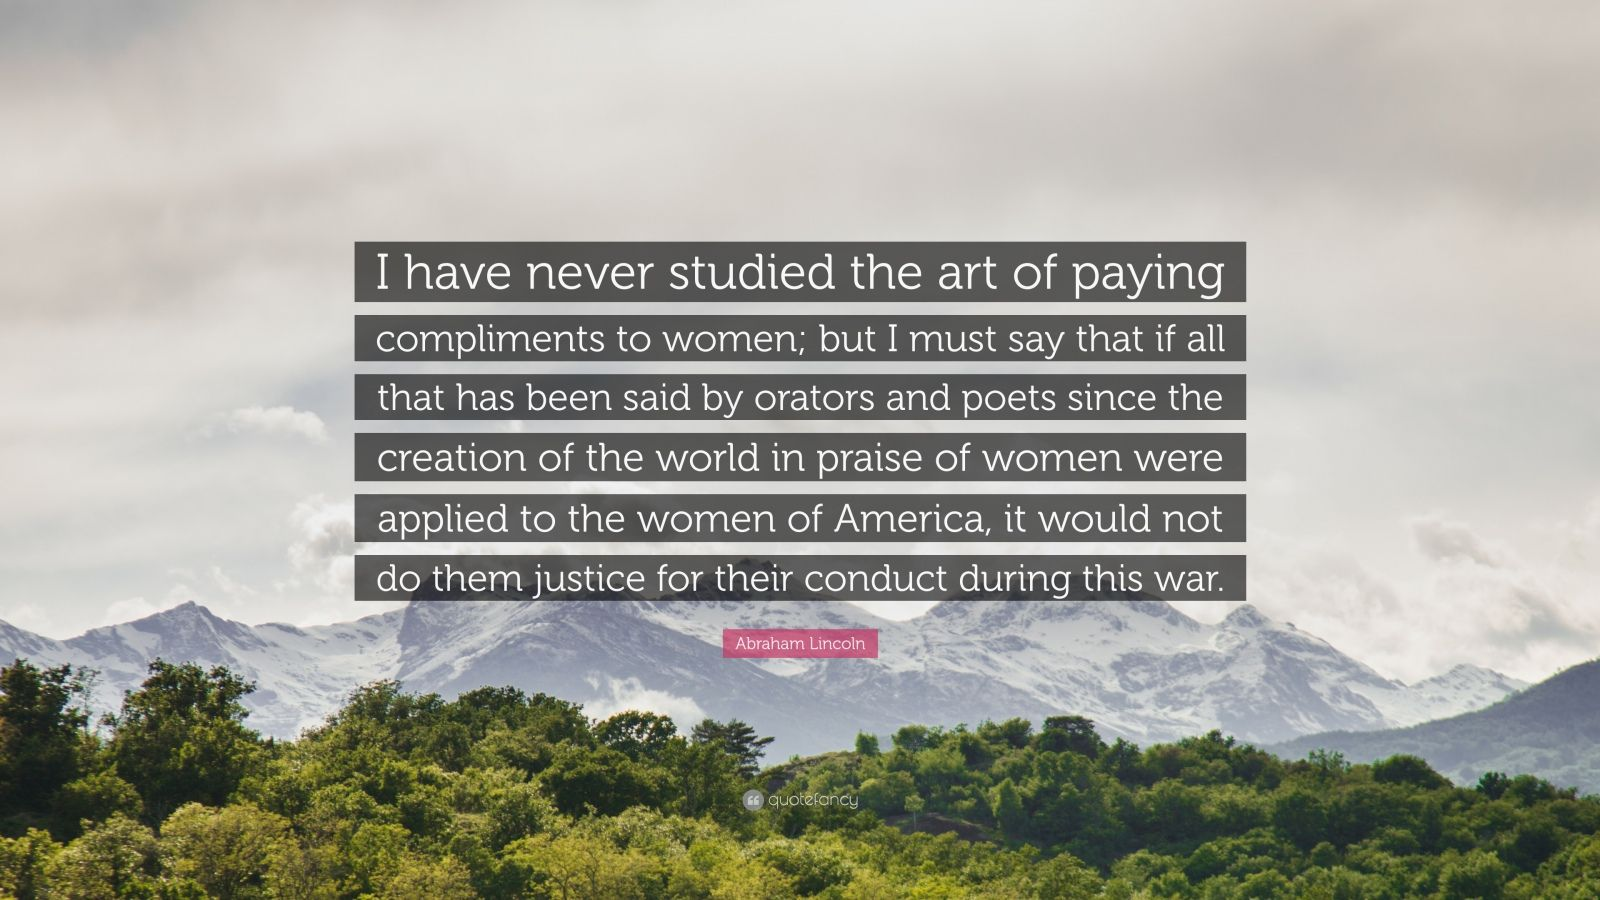 "Abraham Lincoln Quote: ""I have never studied the art of paying compliments to women; but I must say that if all that has been said by orators and poets since the creation of the world in praise of women were applied to the women of America, it would not do them justice for their conduct during this war."""